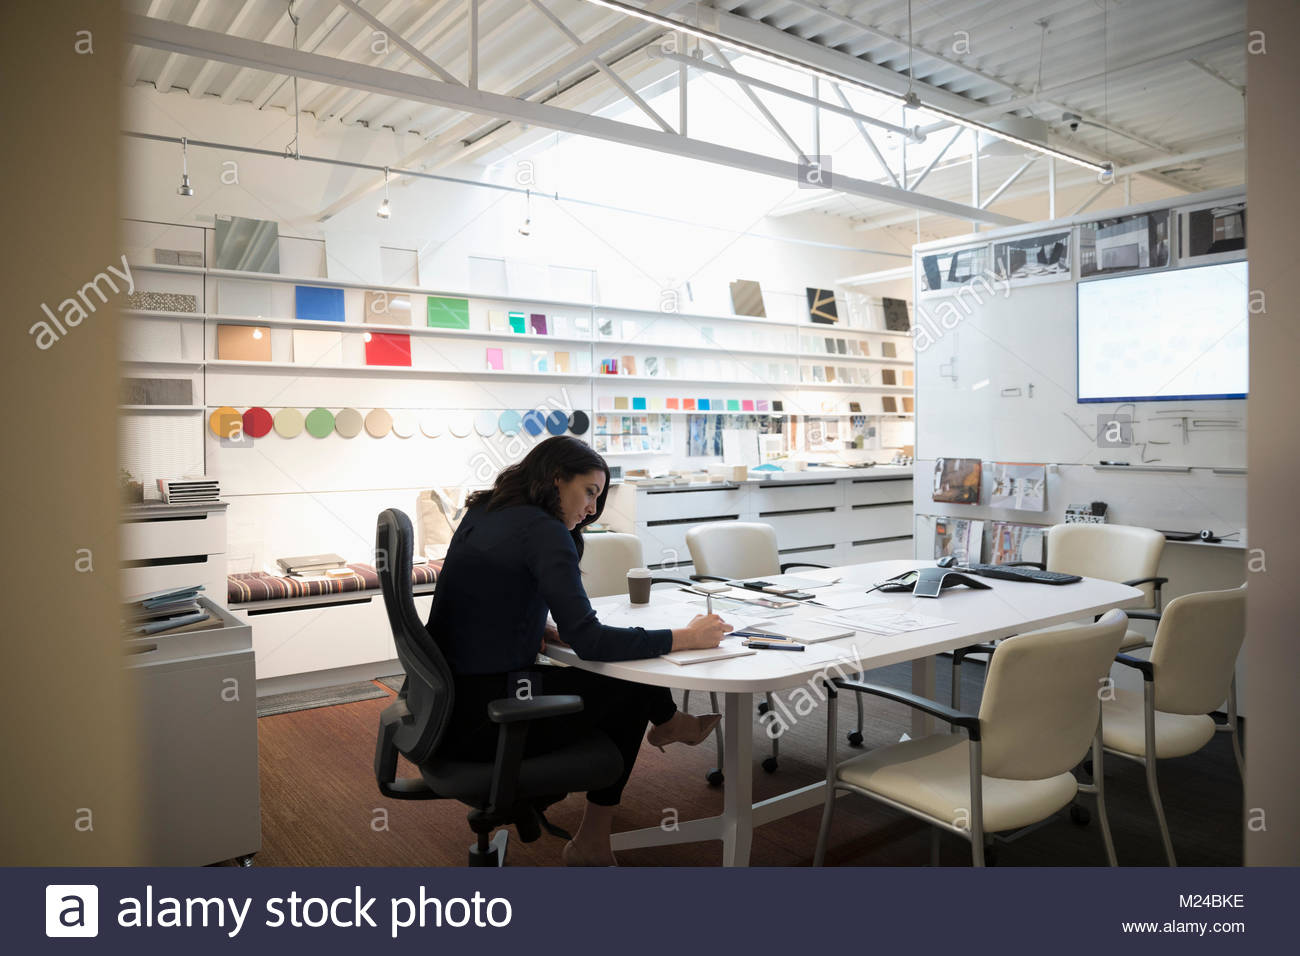 Designer working in creative office - Stock Image